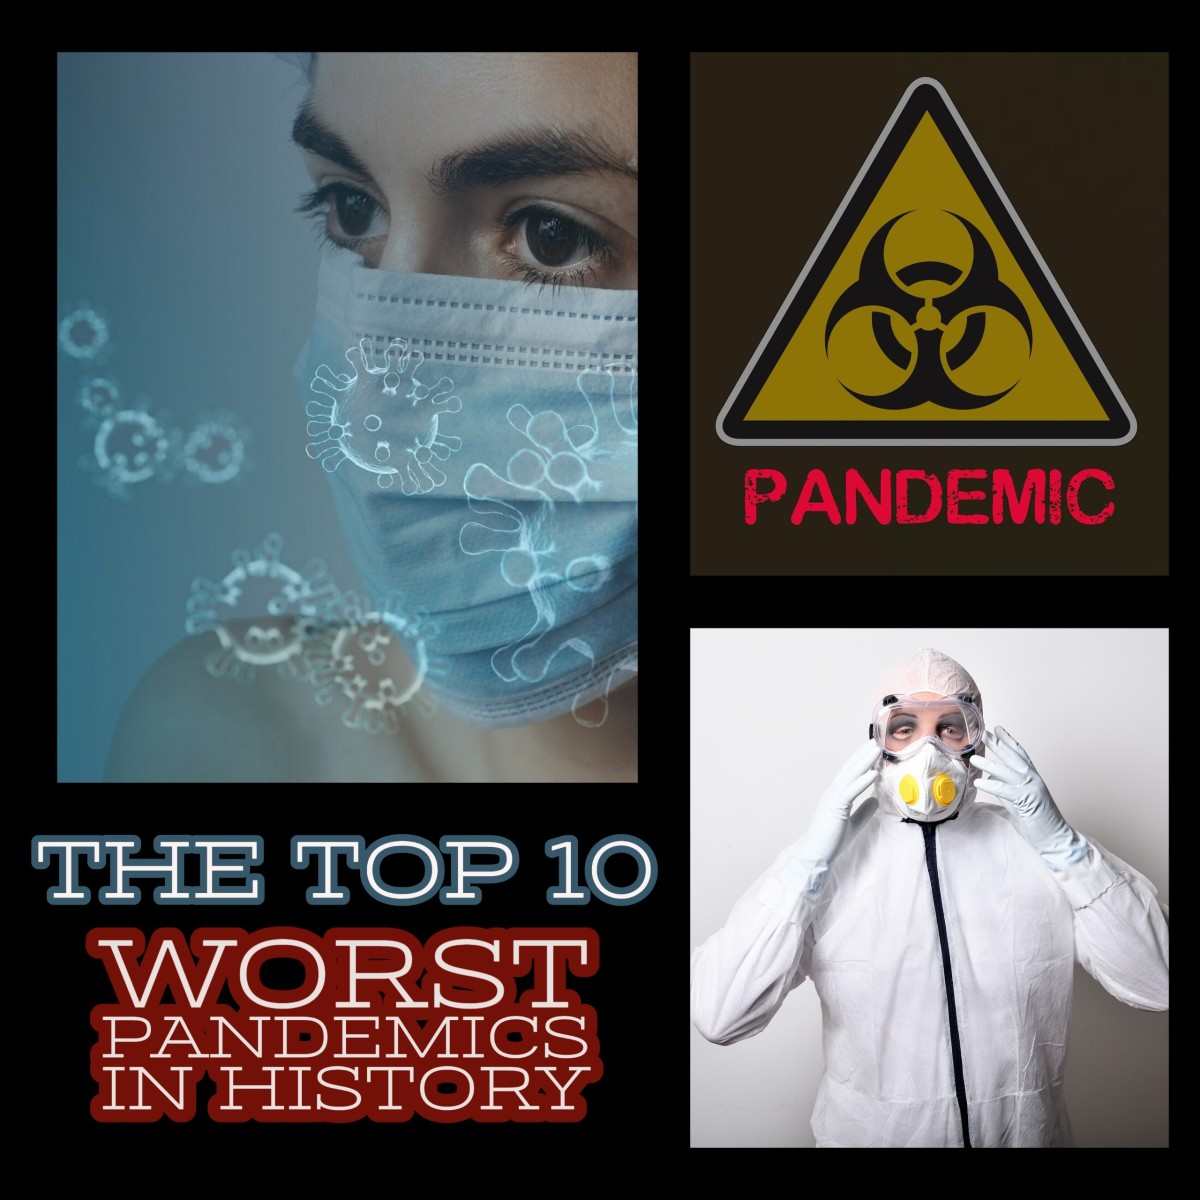 The 10 worst pandemics in human history.